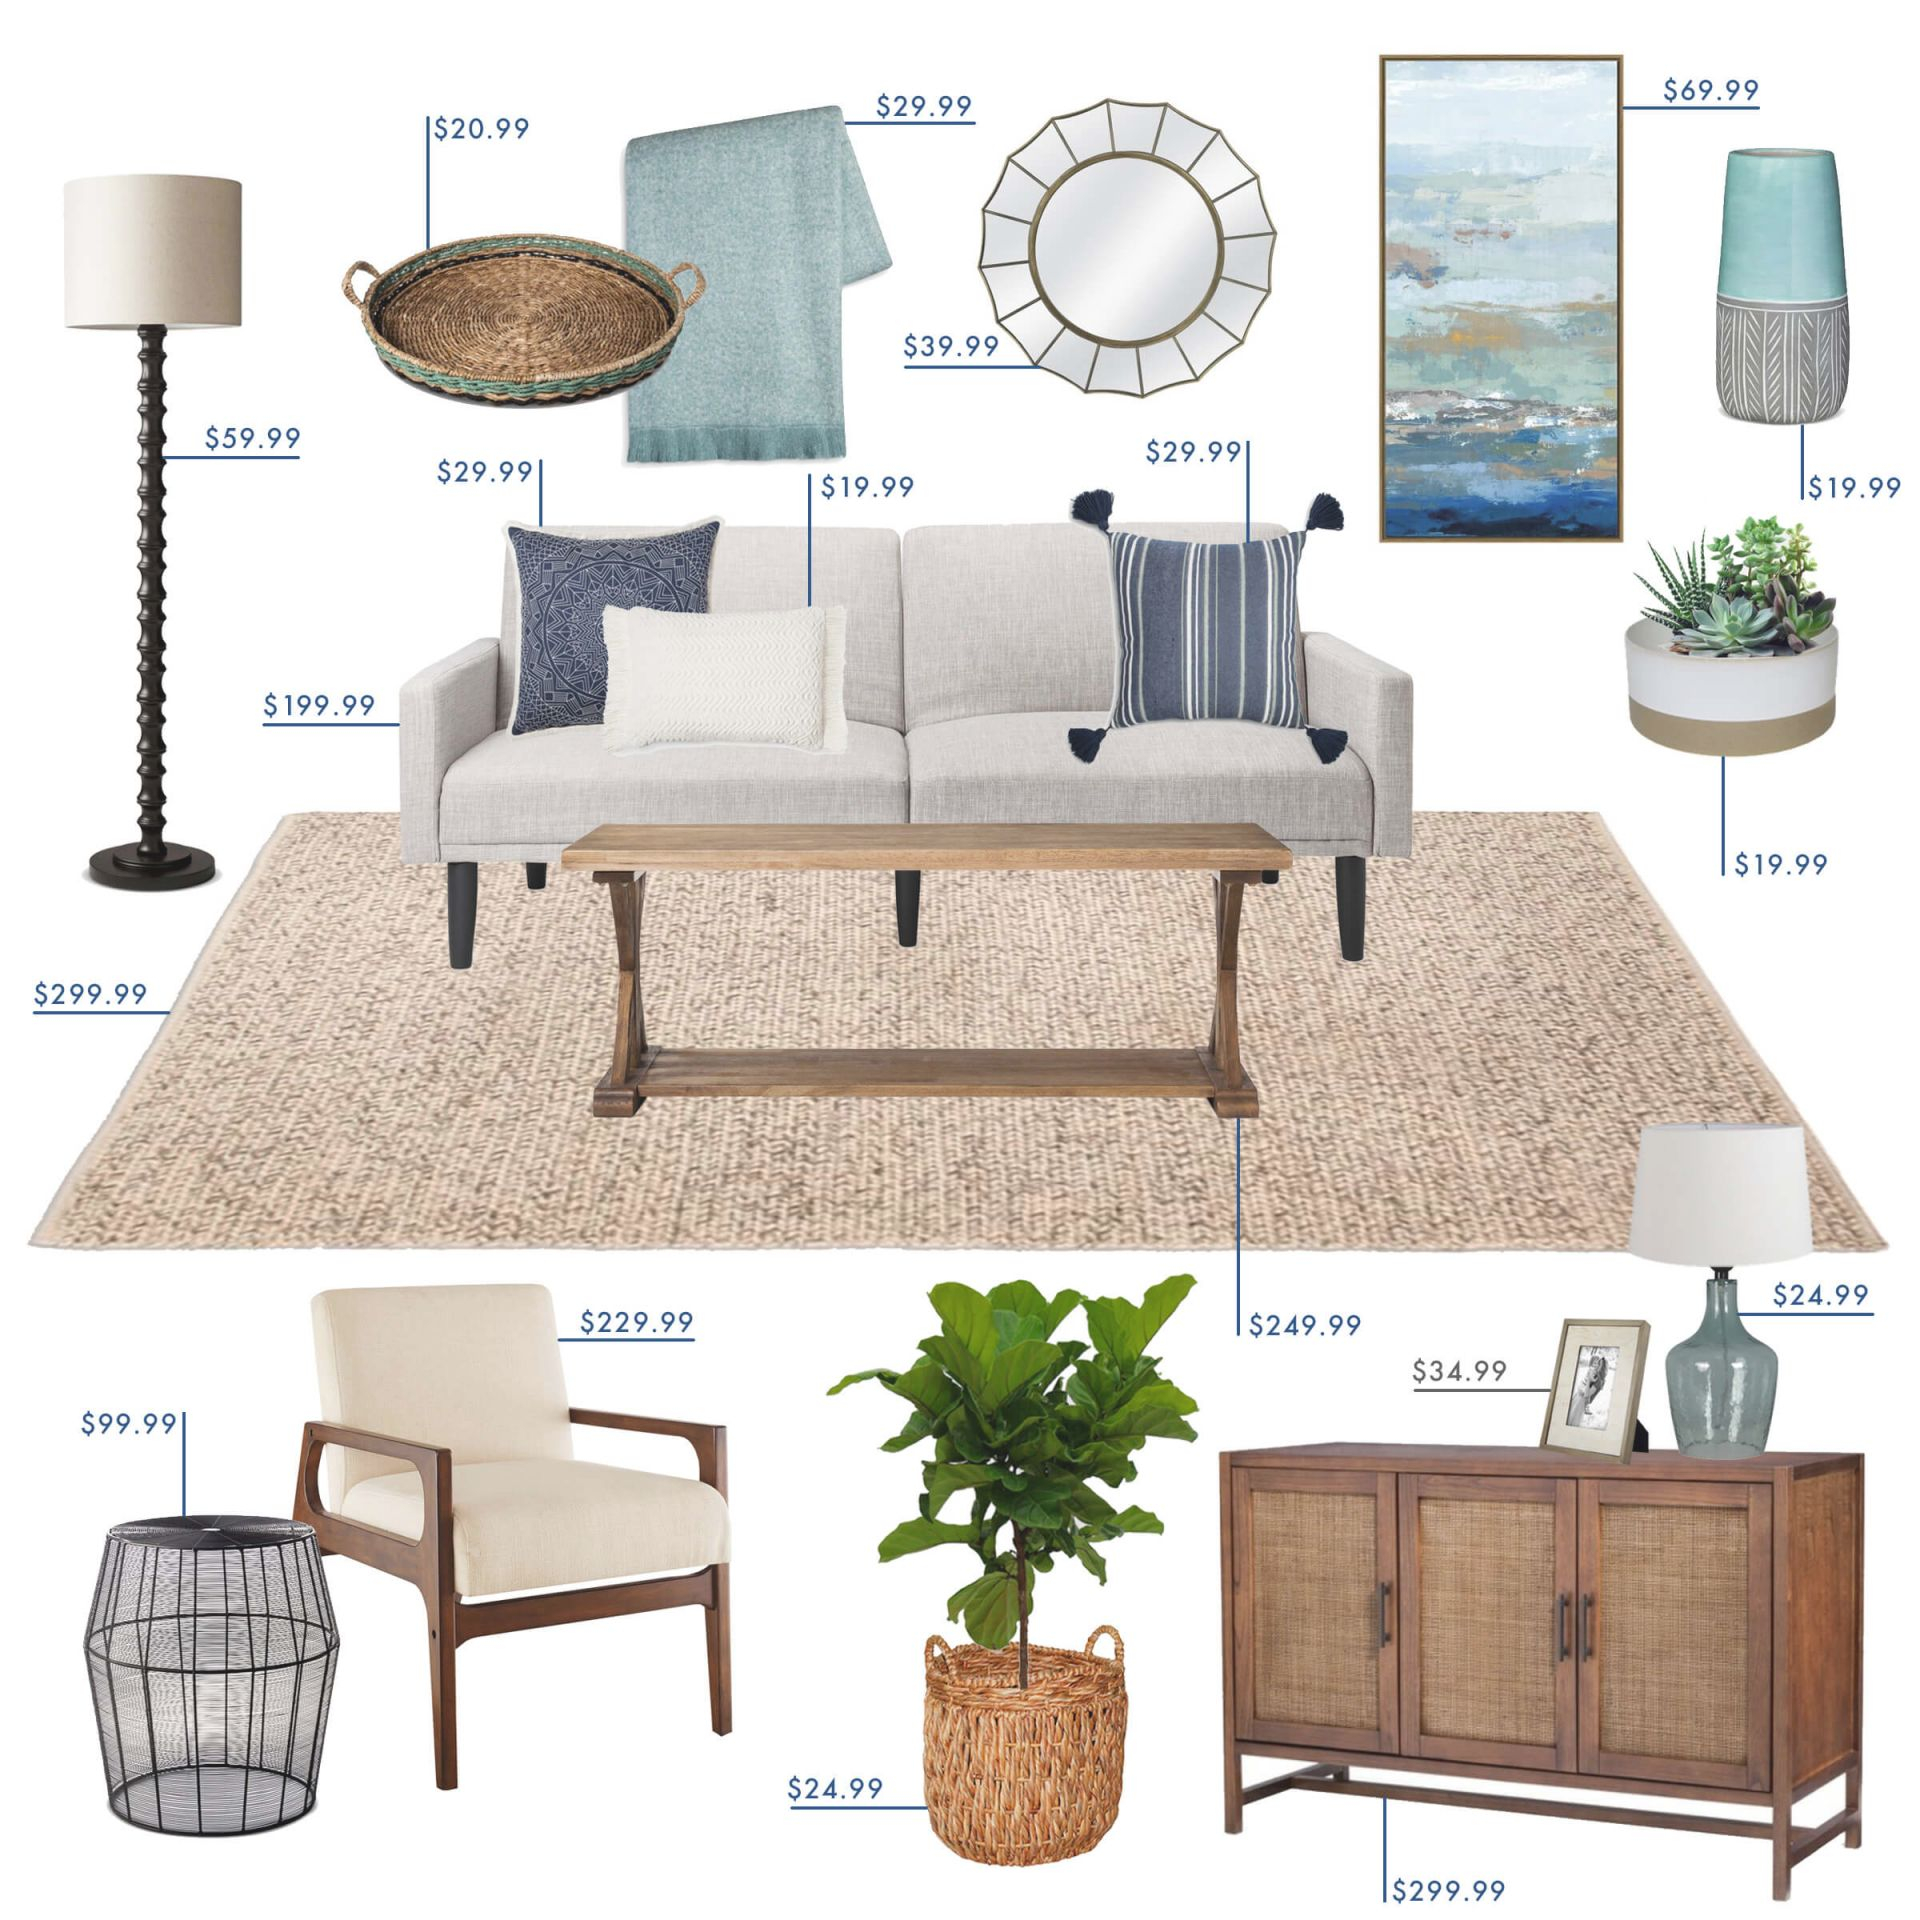 Target Budget Living Room - Emily Henderson in Unique Target Living Room Furniture